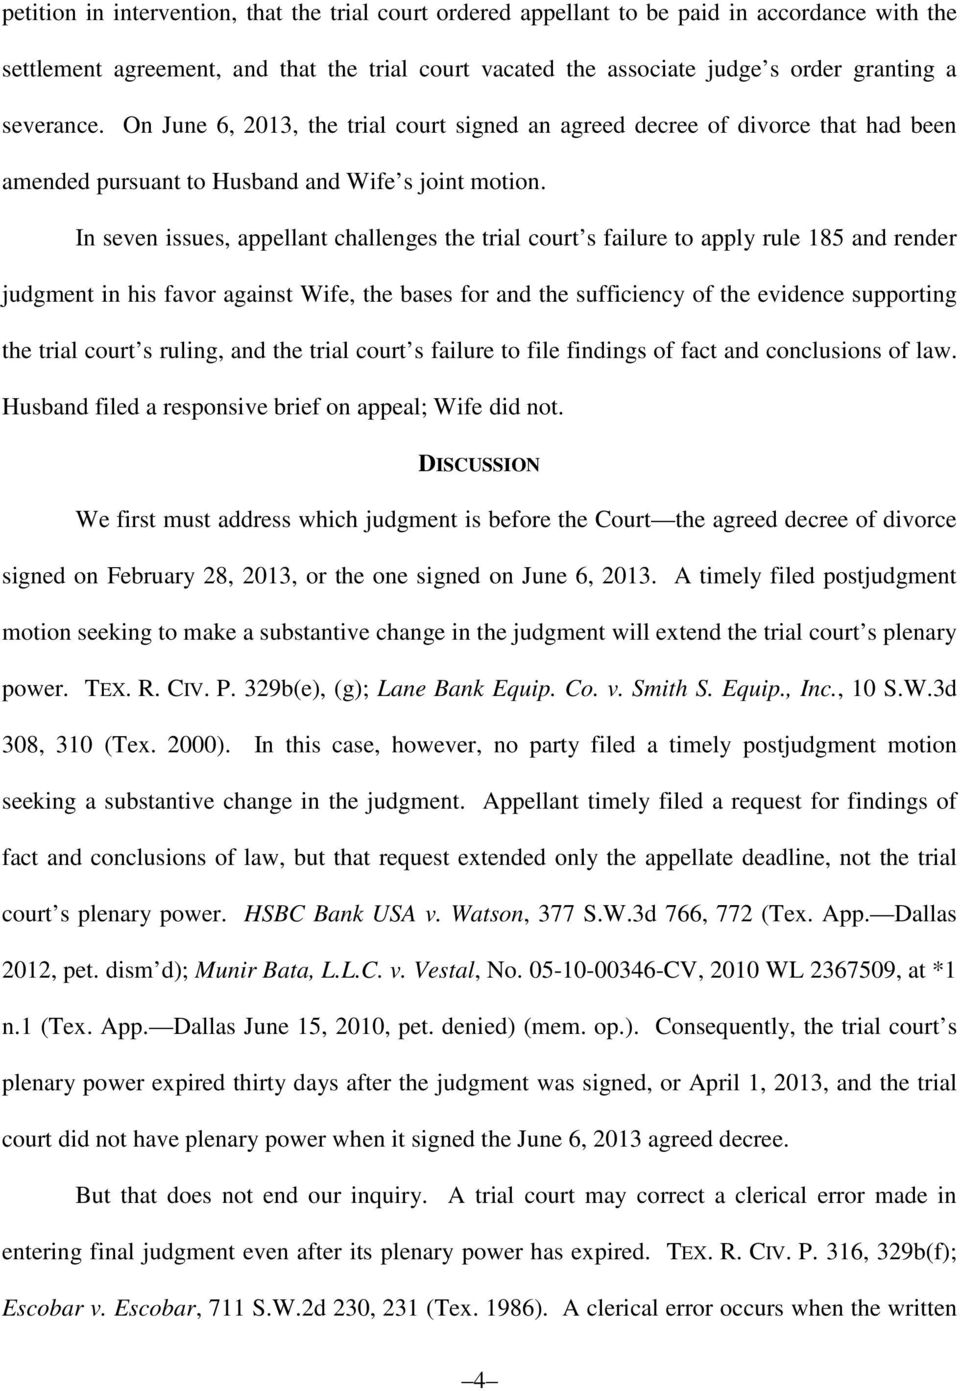 In seven issues, appellant challenges the trial court s failure to apply rule 185 and render judgment in his favor against Wife, the bases for and the sufficiency of the evidence supporting the trial